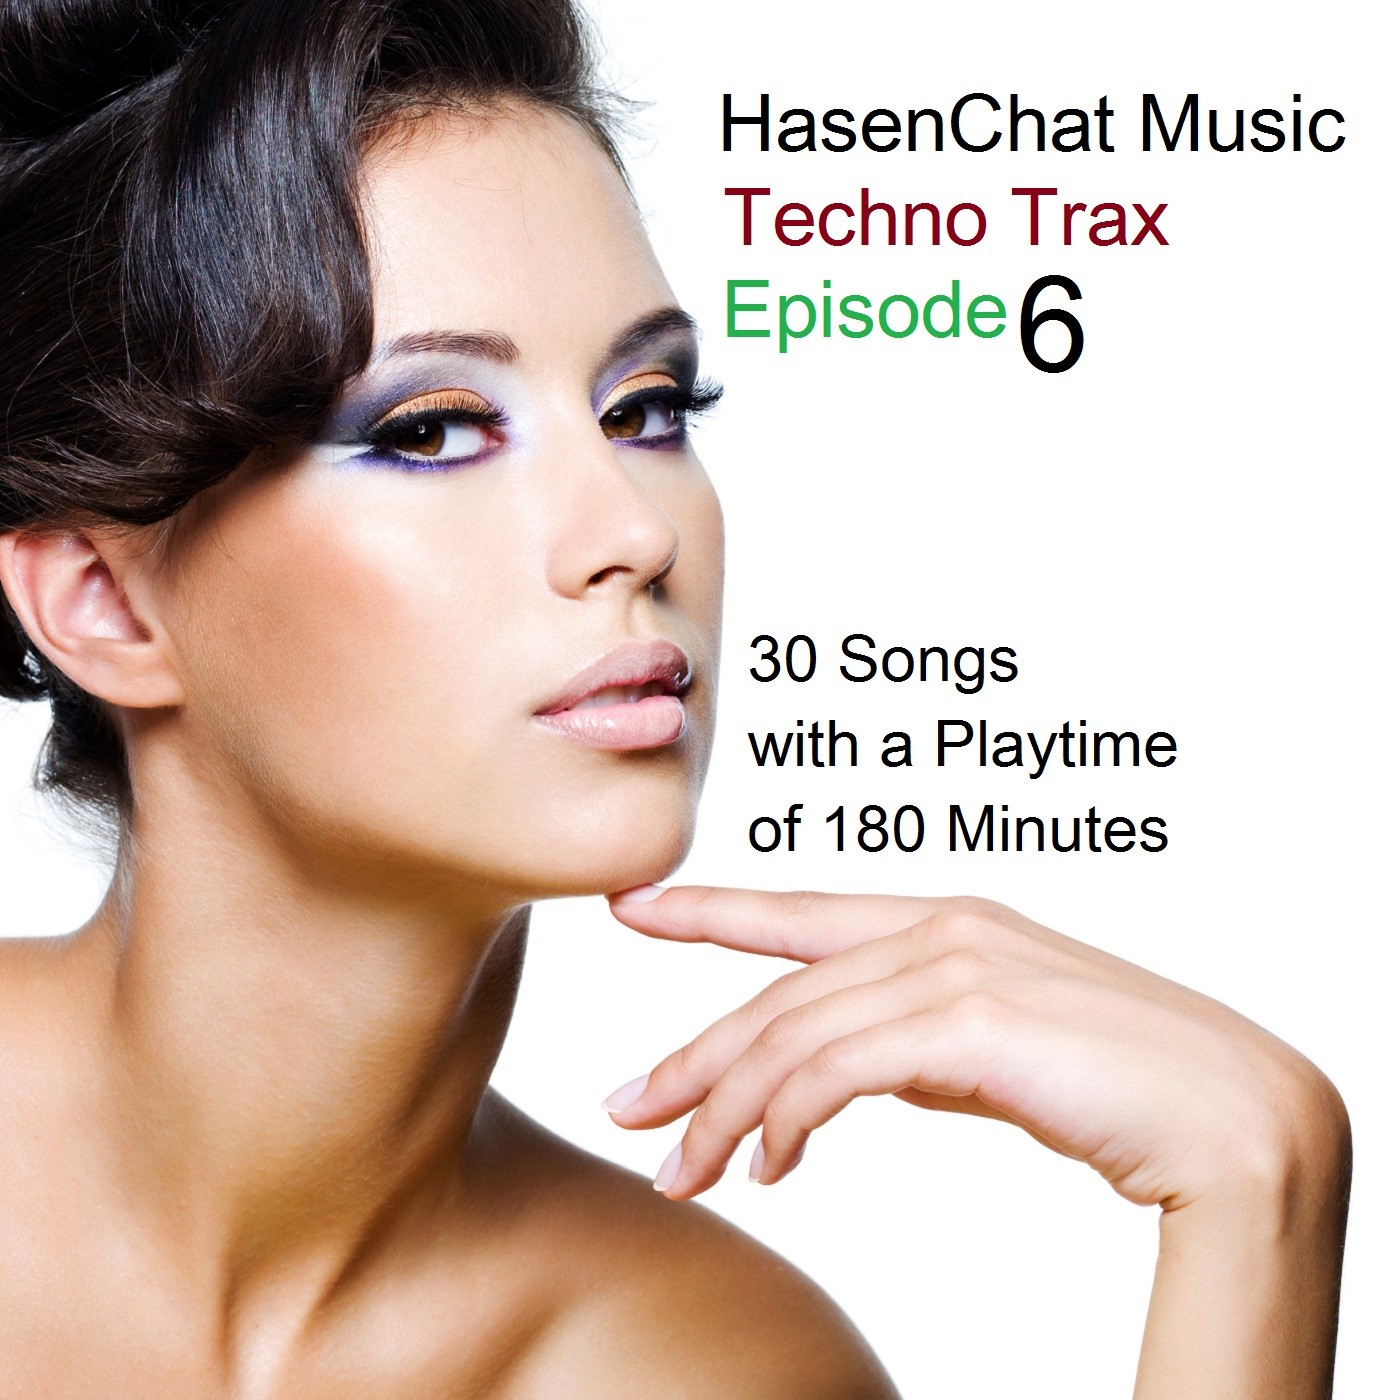 HasenChat Music - Techno Trax - Episode 6